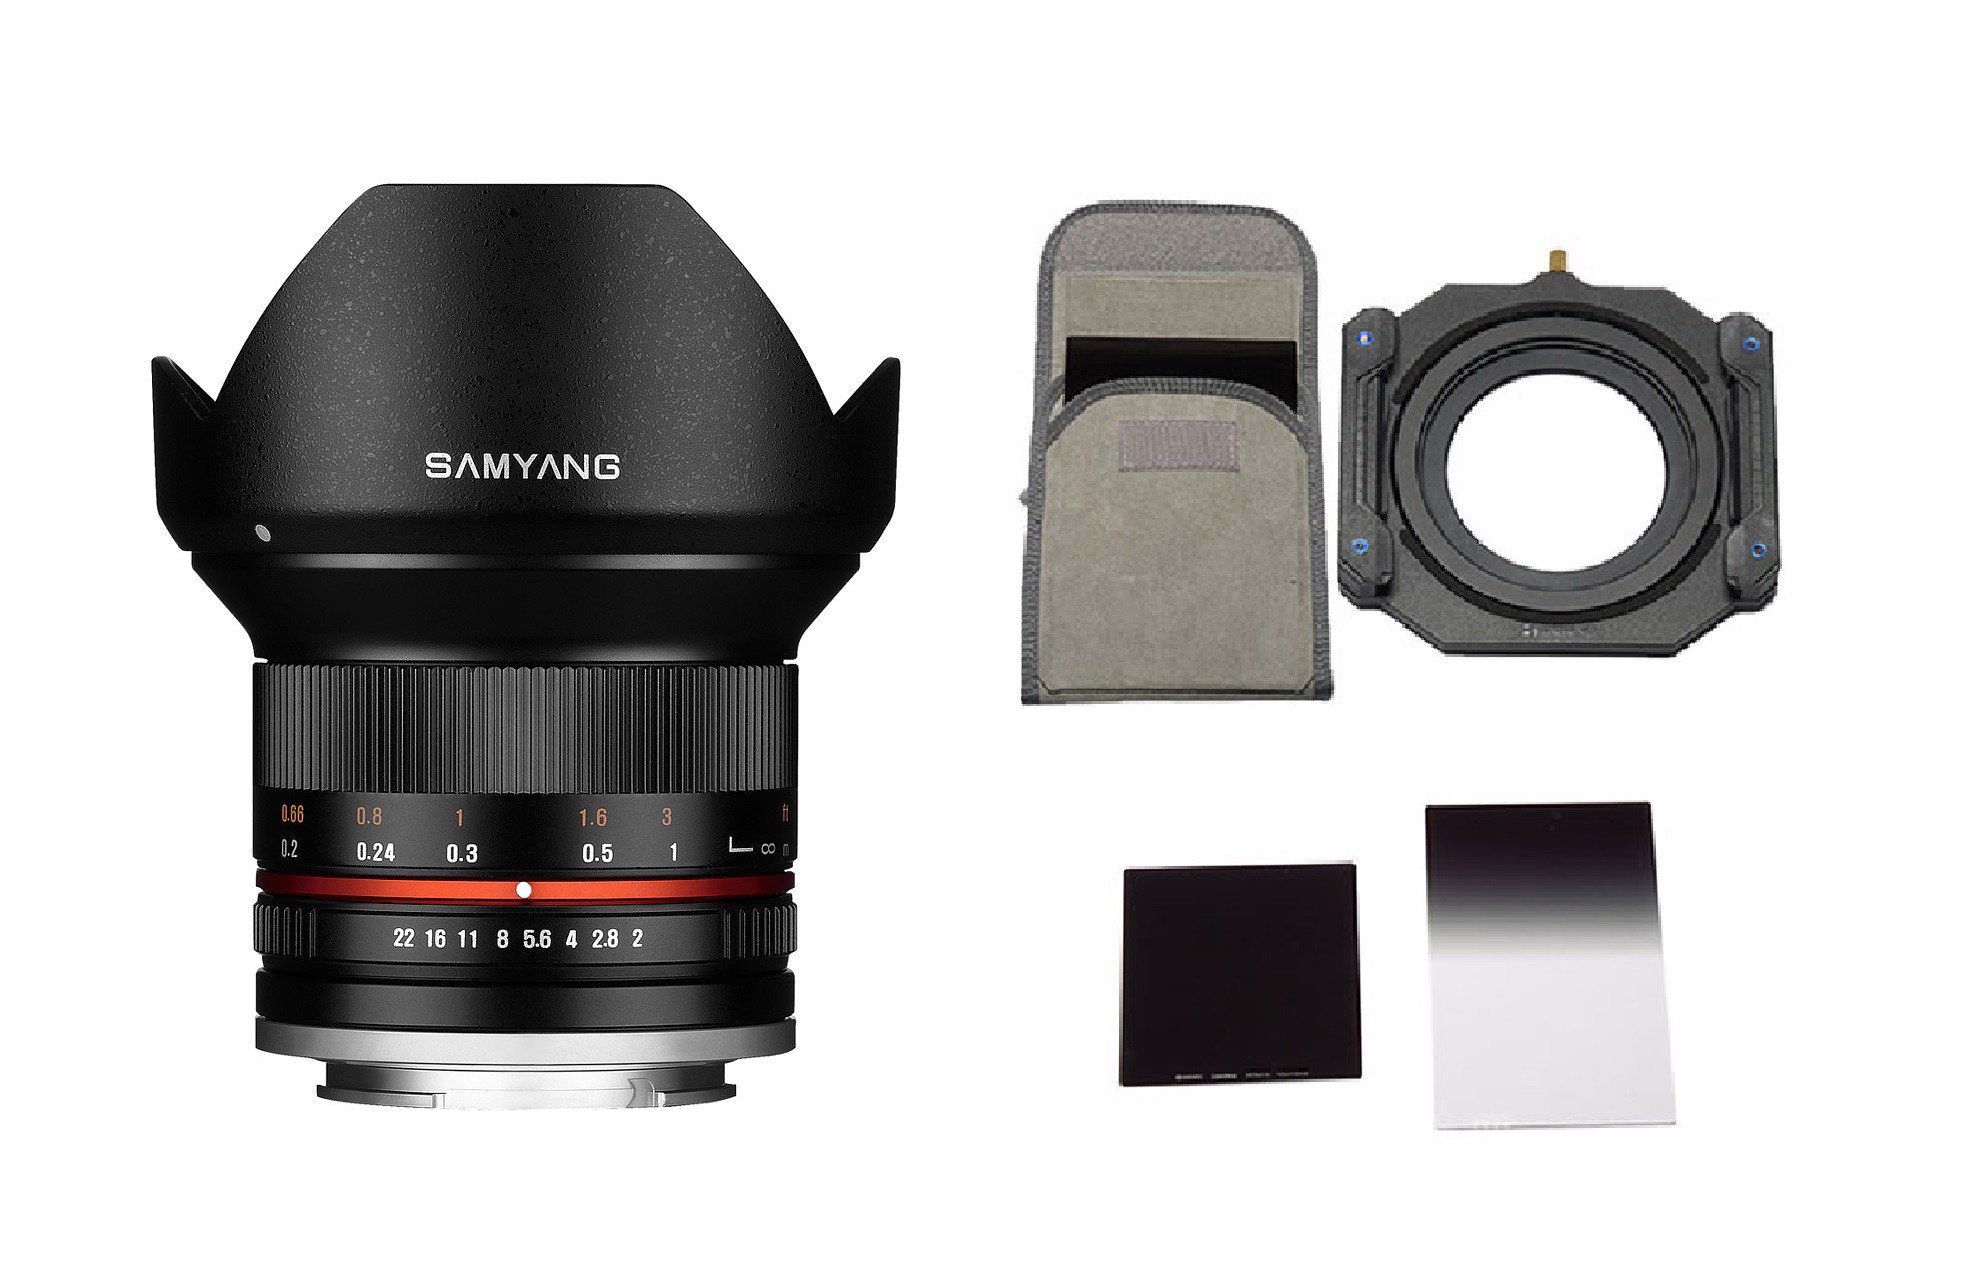 Samyang 12mm F2.0 NCS + Bộ Filter Holder Benro FU100VN1